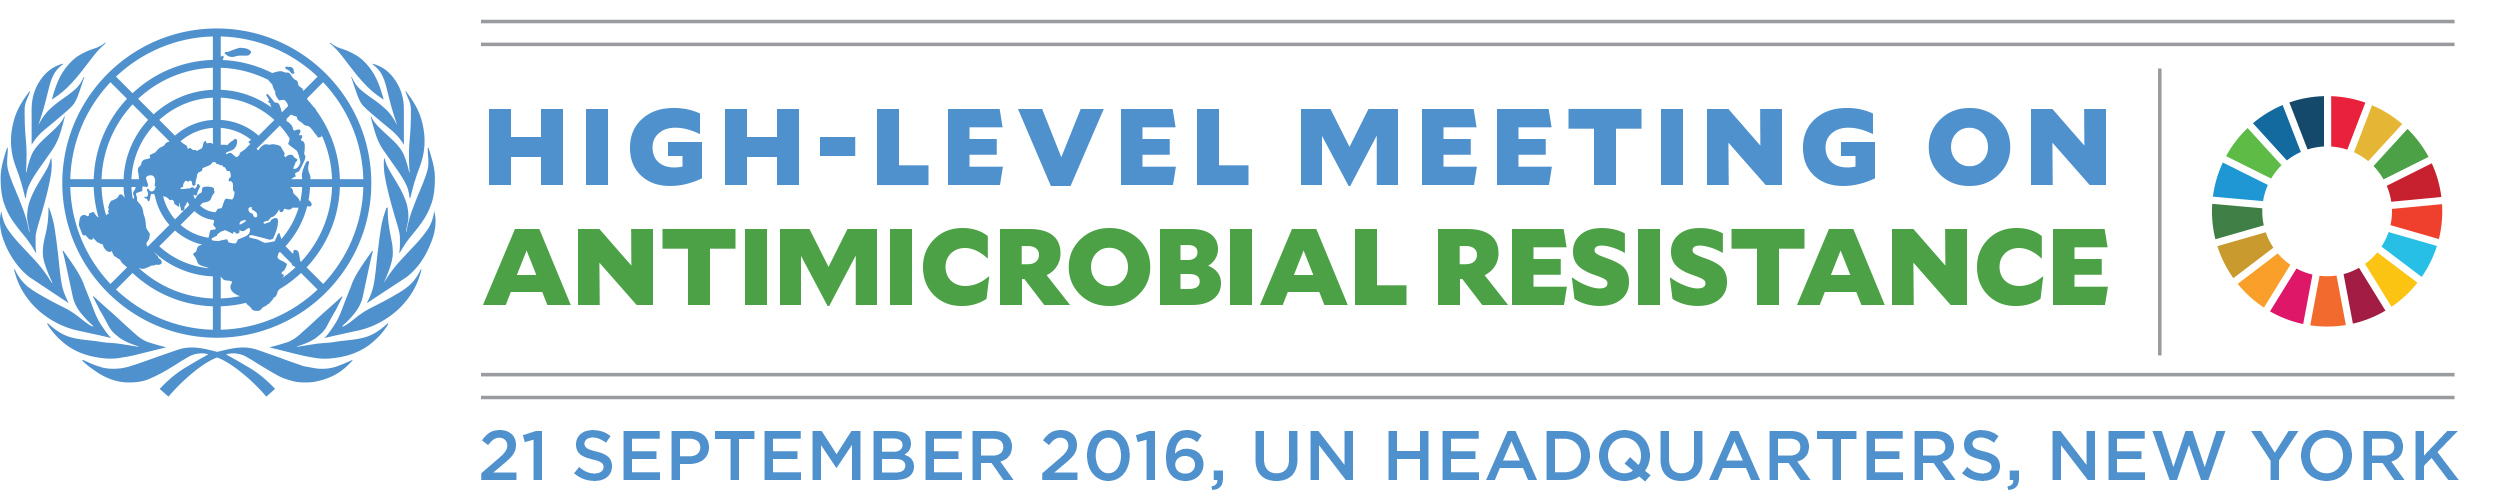 Logo Antimicrobial Resistance